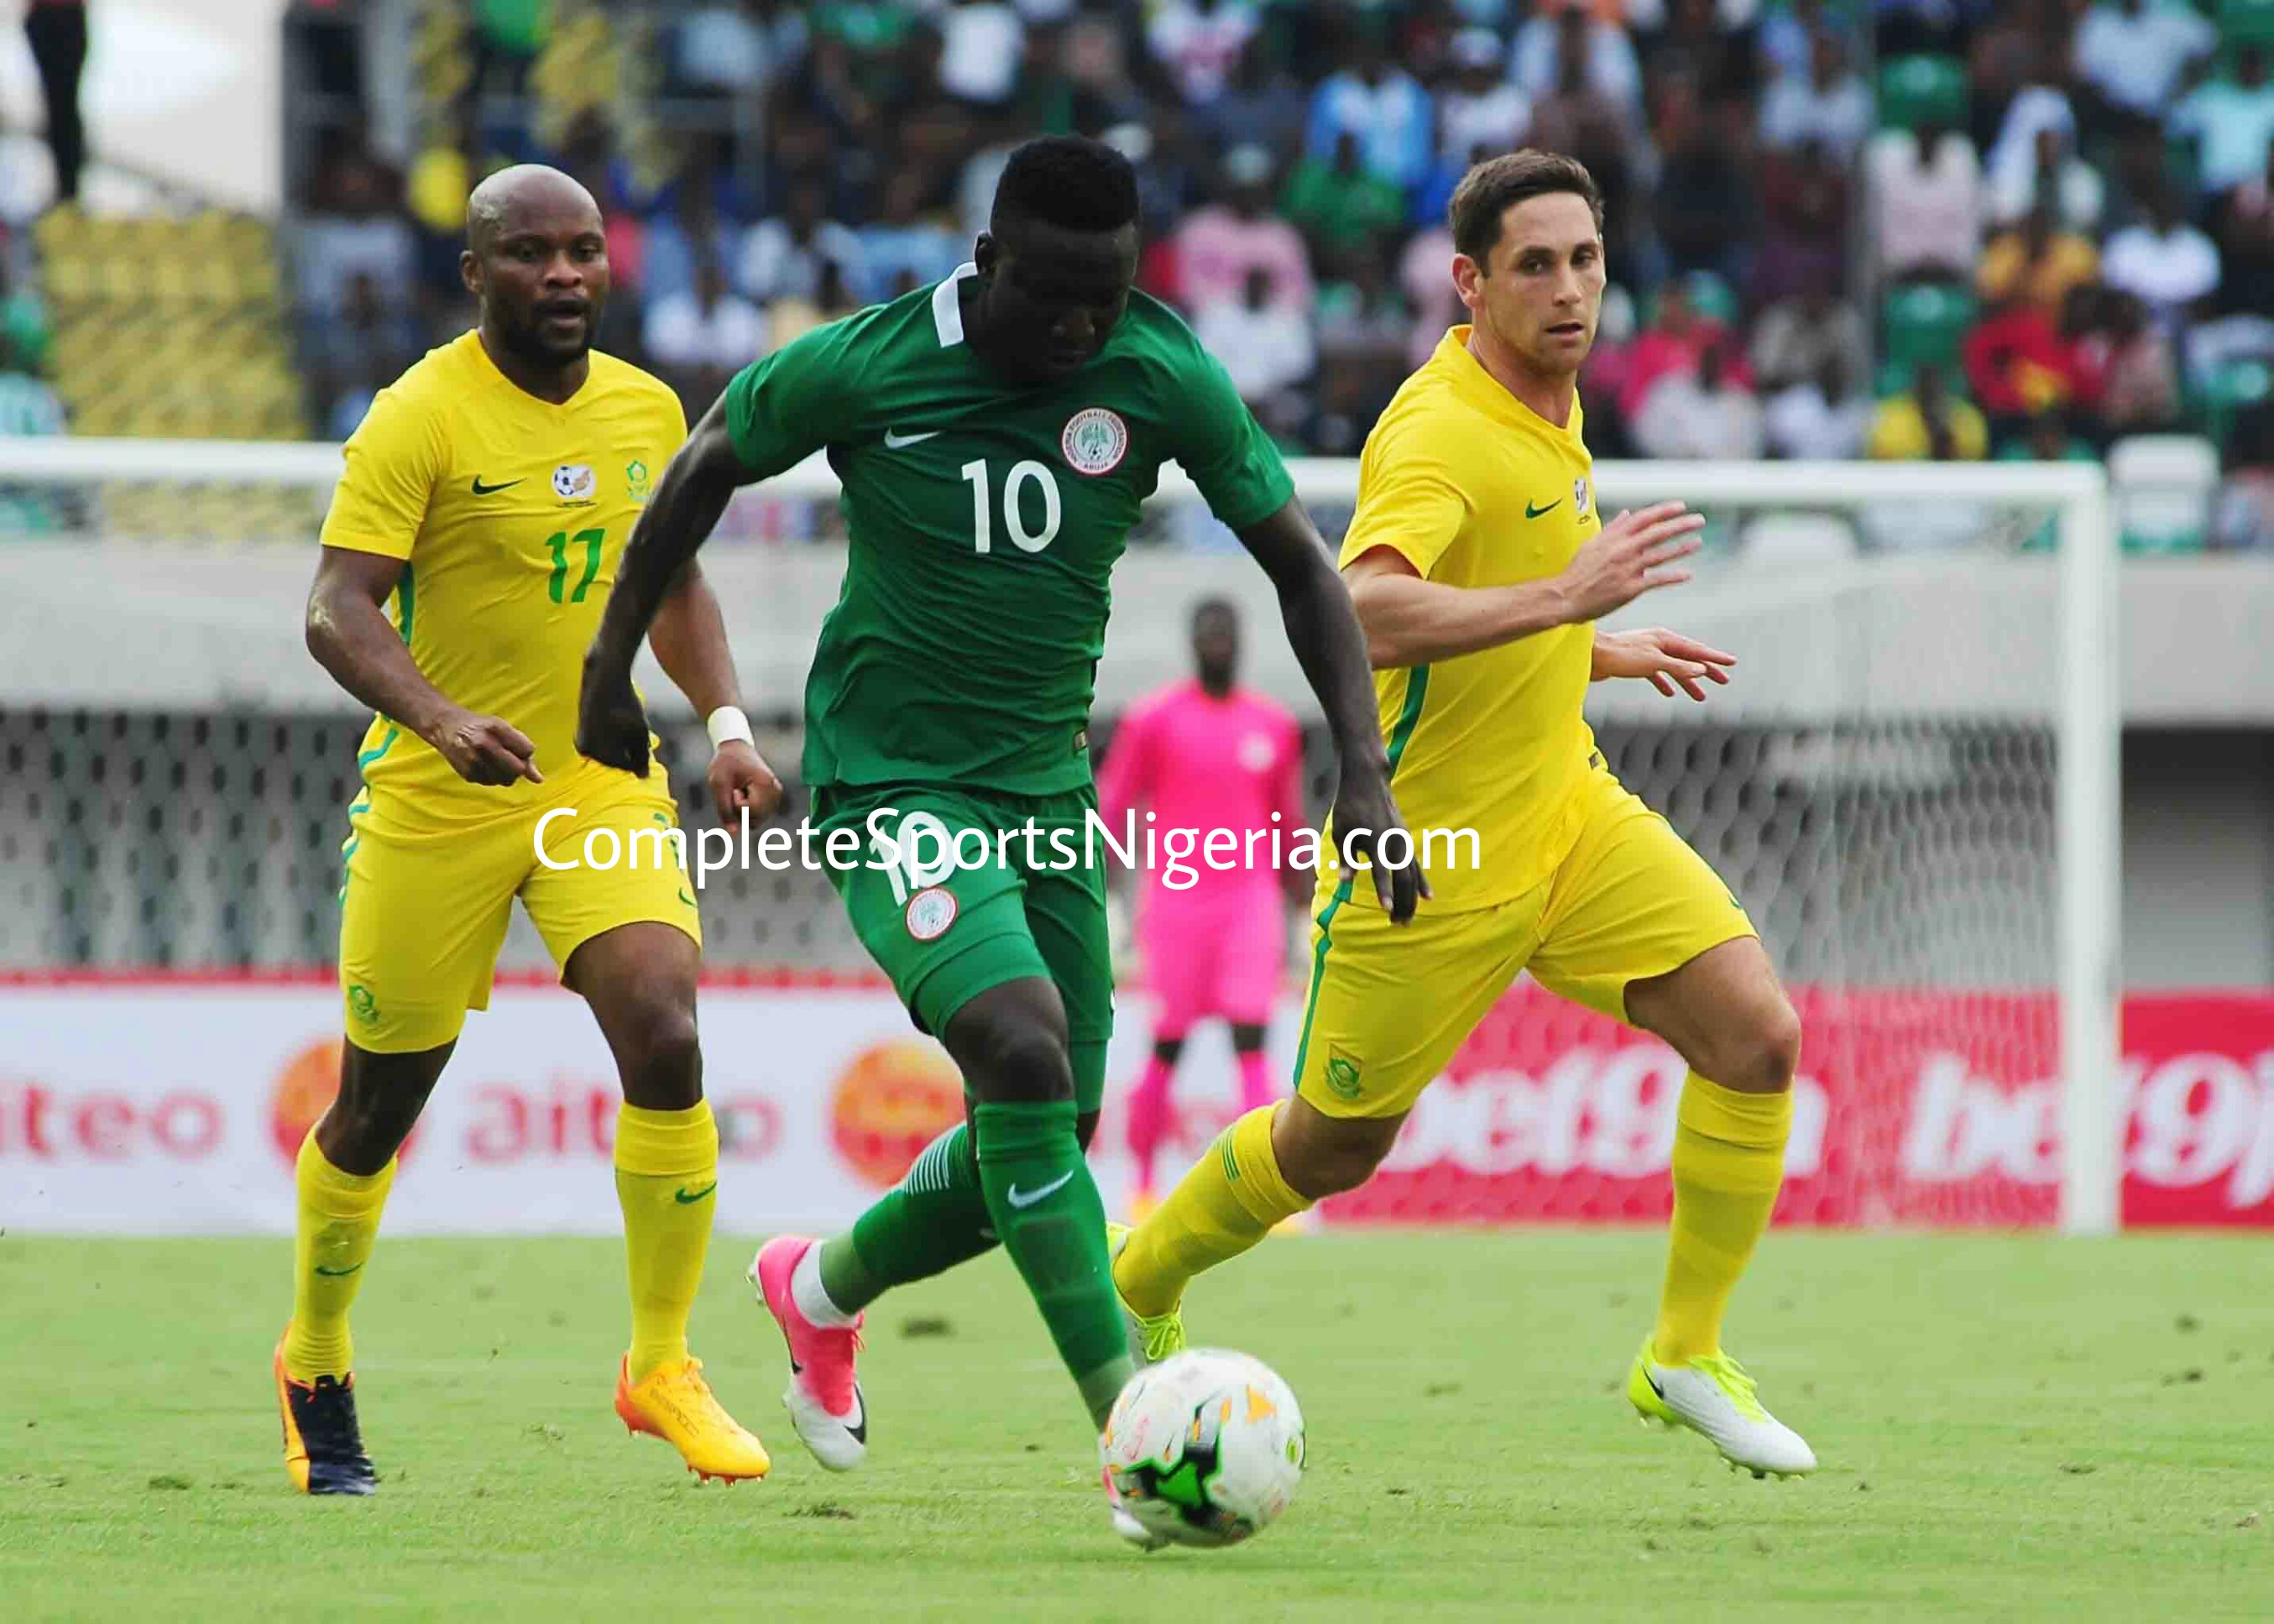 South Africa Stun Super Eagles in Uyo, Break Nigeria Jinx